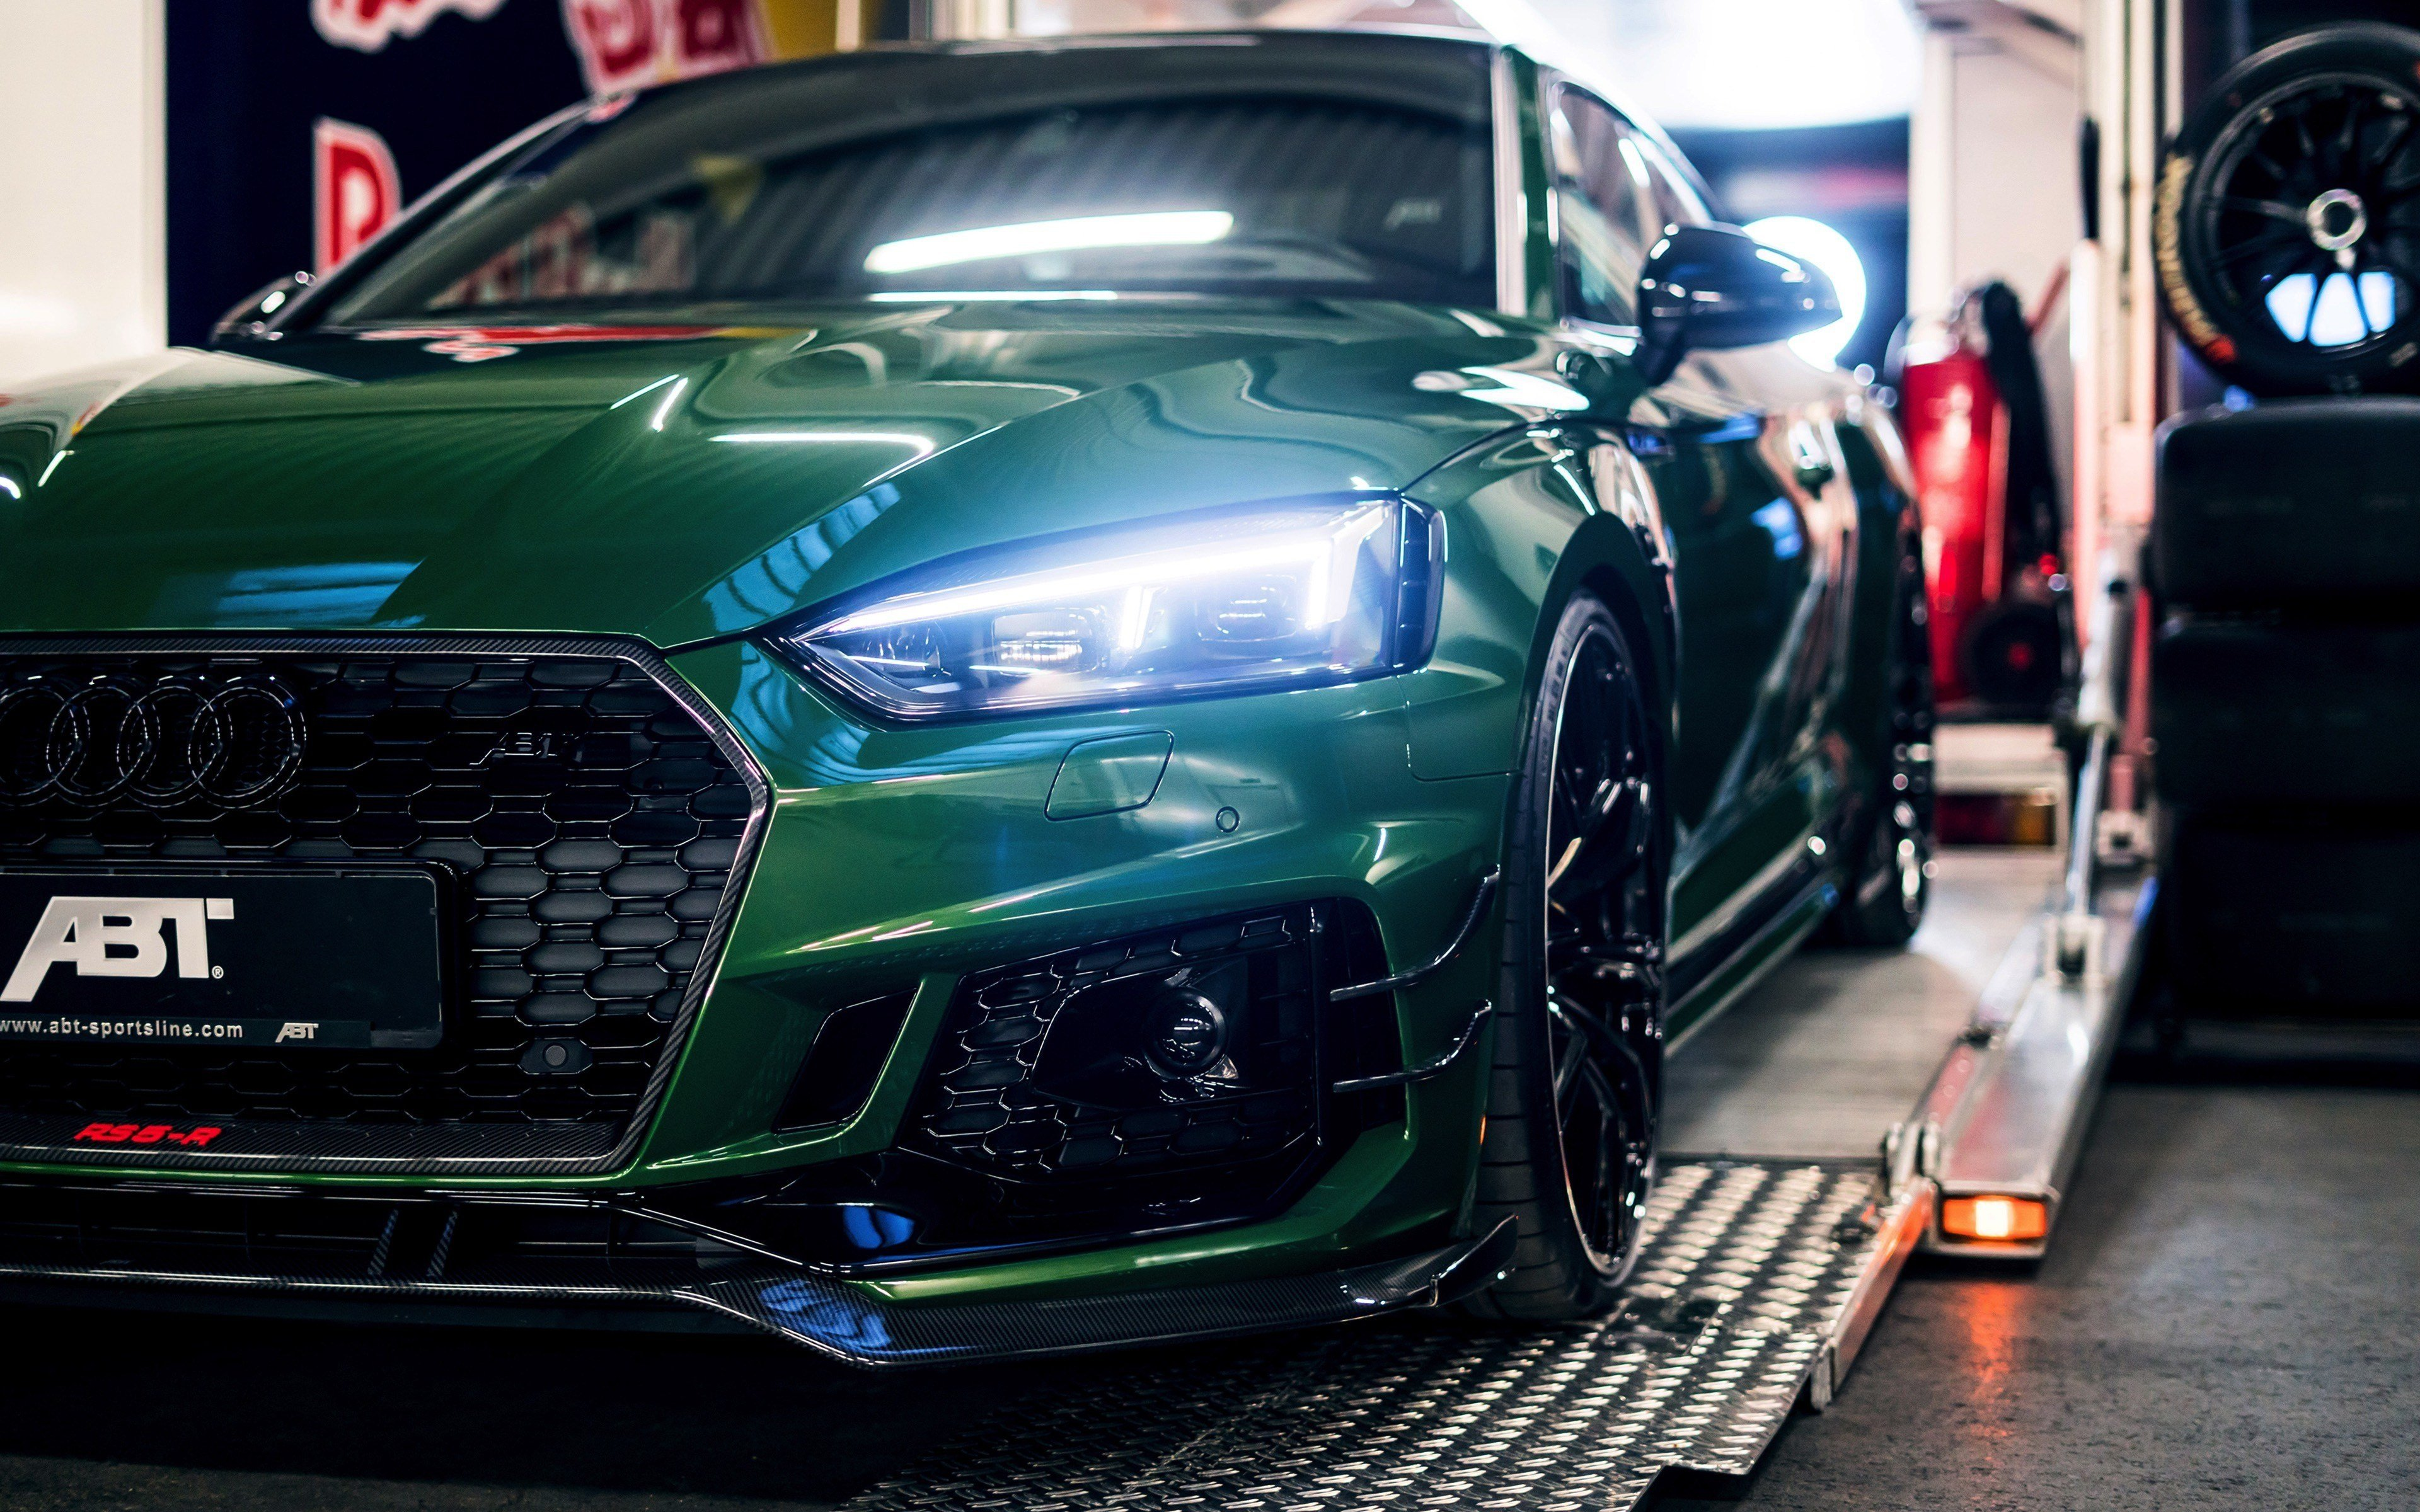 Latest Download 3840X2400 Wallpaper Audi Rs5 R Coupe Abt Free Download